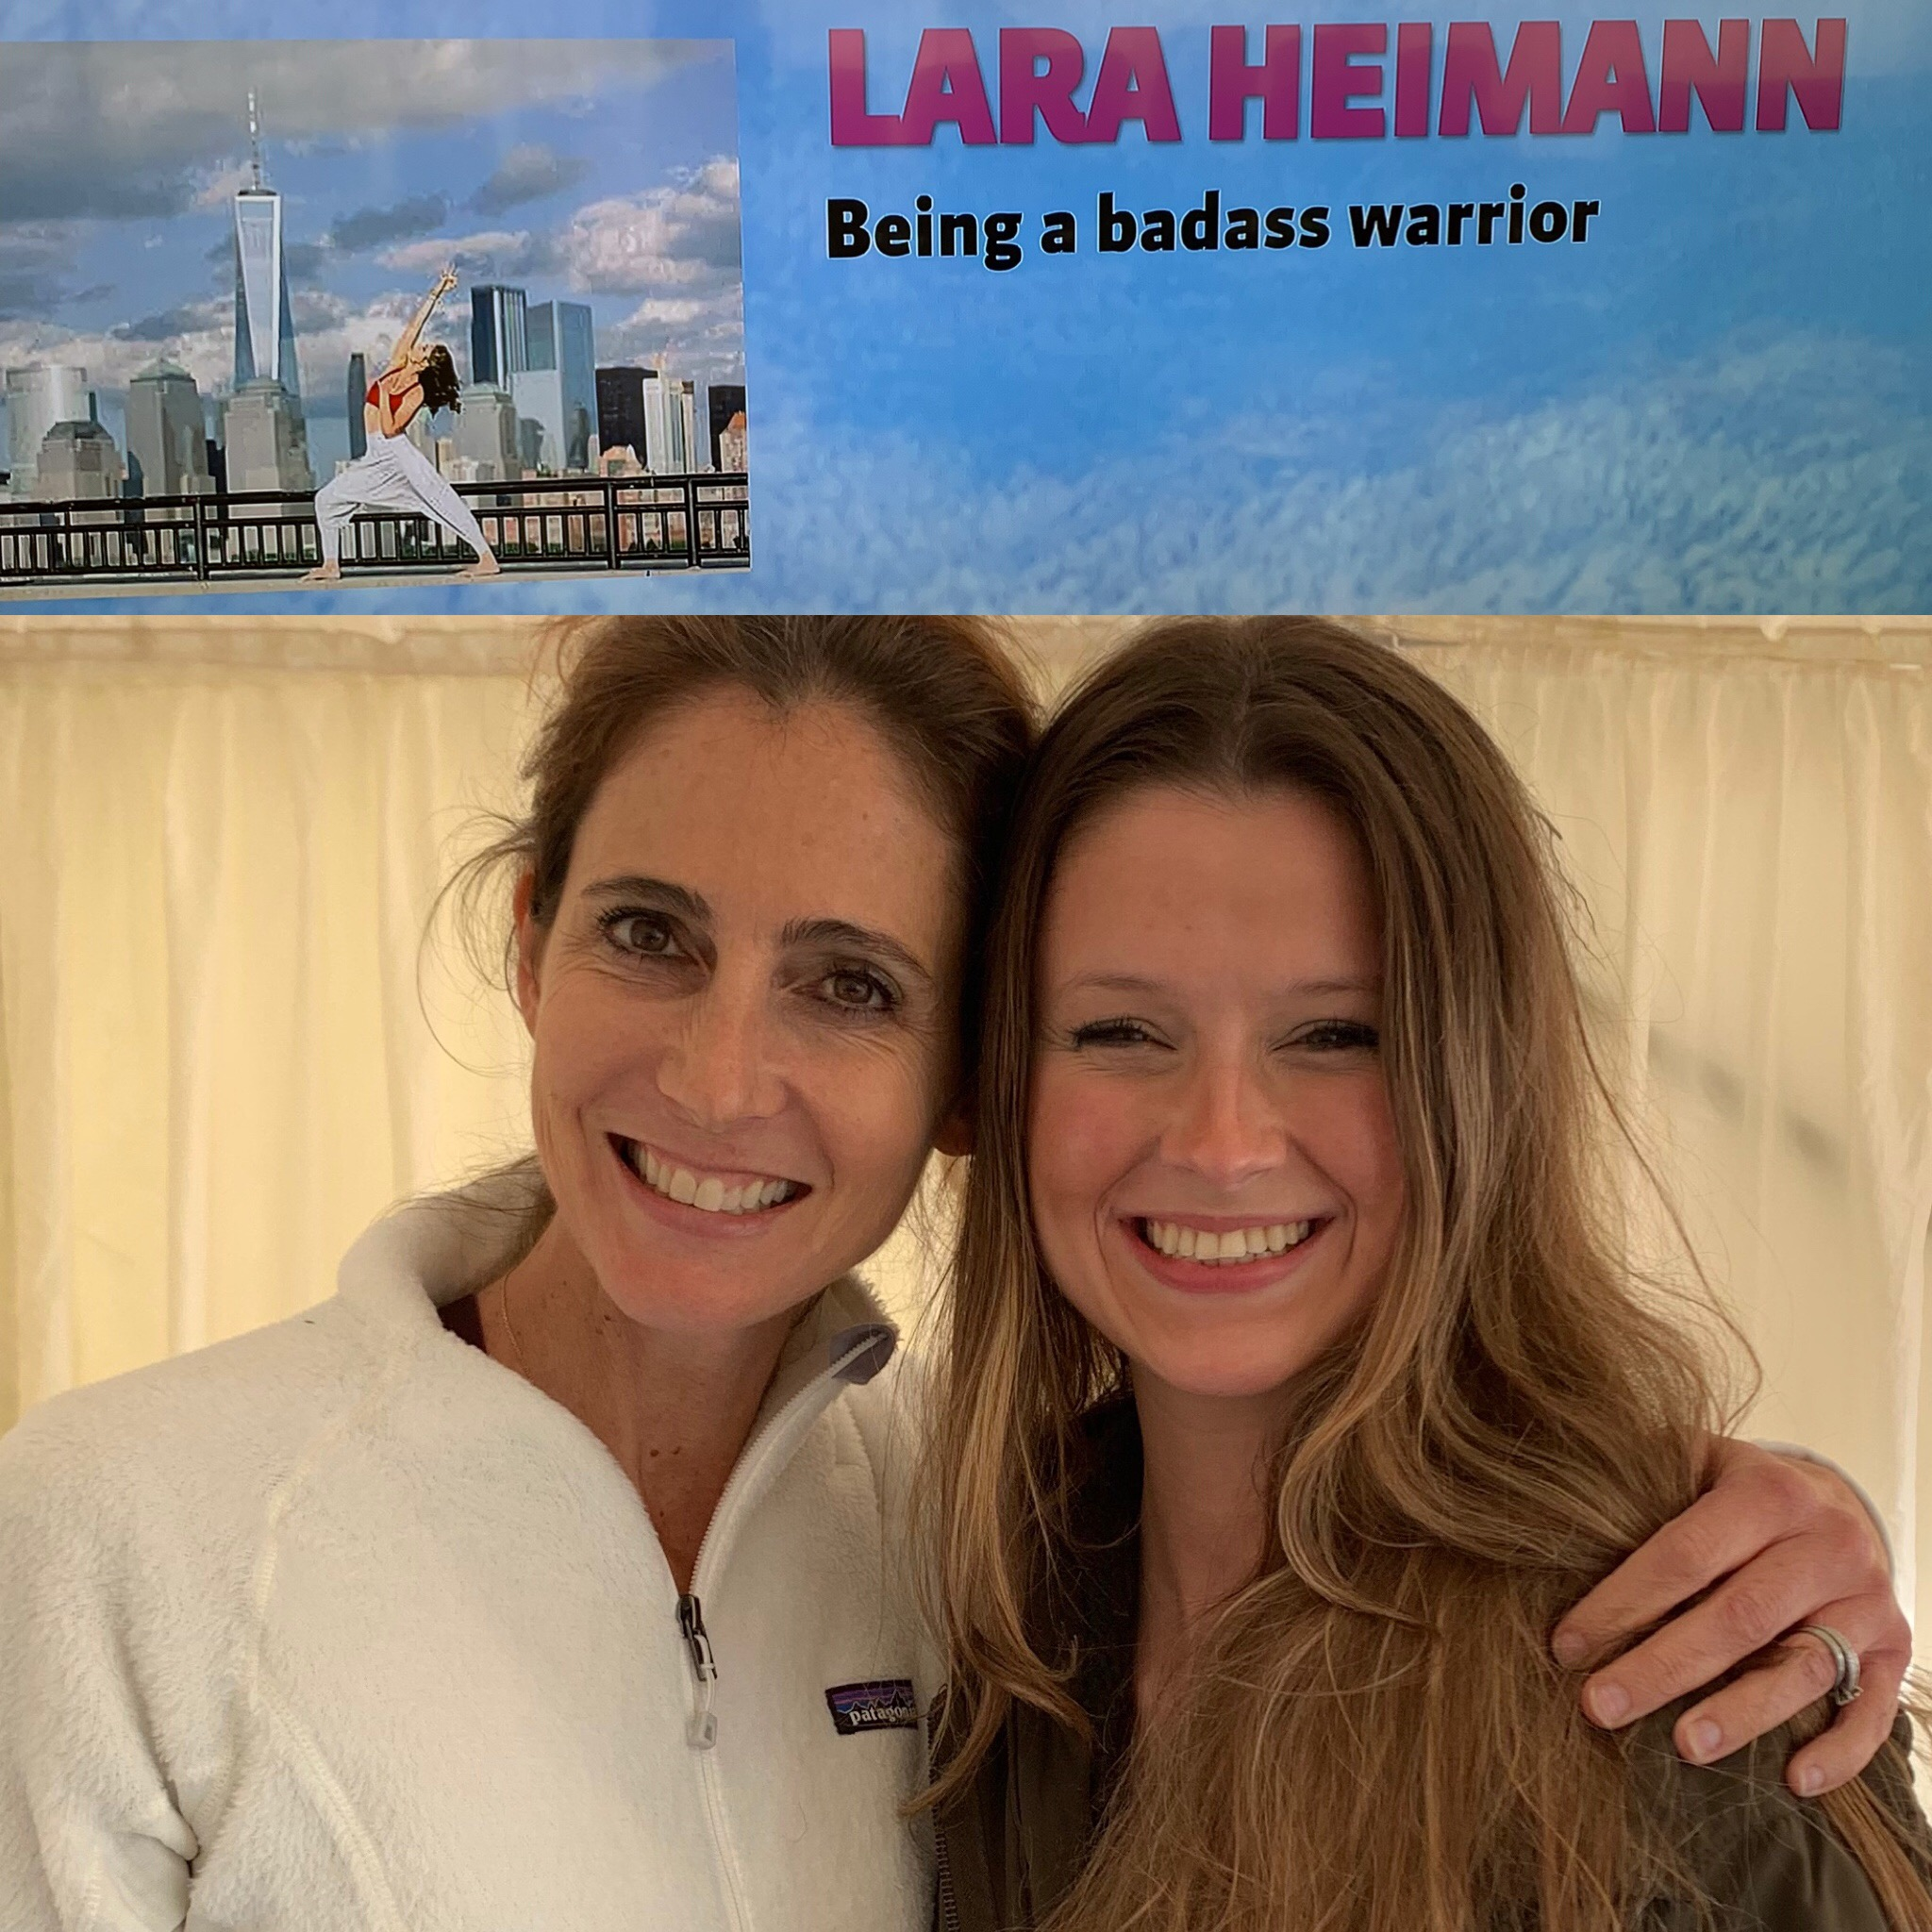 Here she is with one of her old yoga teacher training students, Michaela, who was responsible for inviting her to the festival.